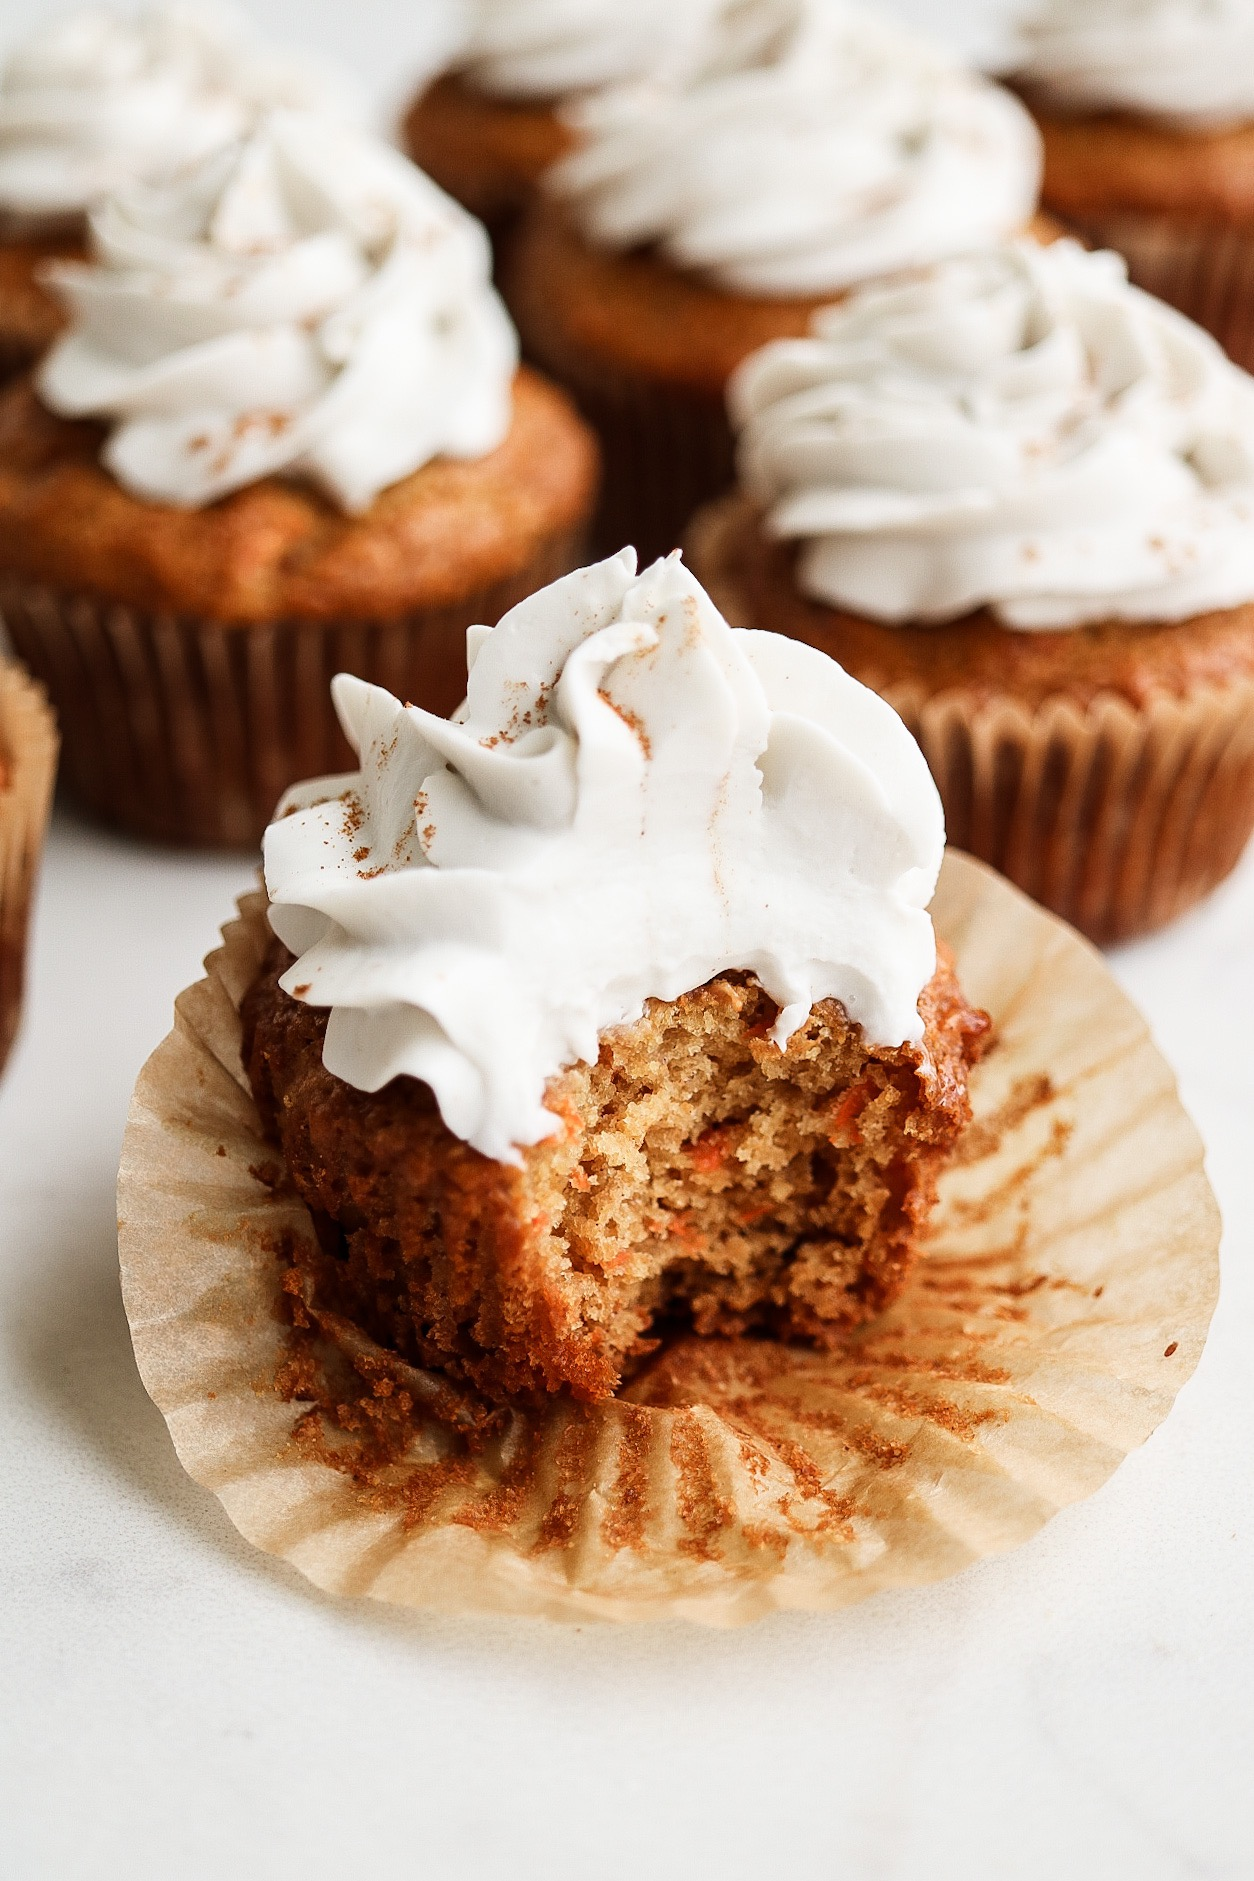 Fluffy and sweet - just the way a carrot cake should be!